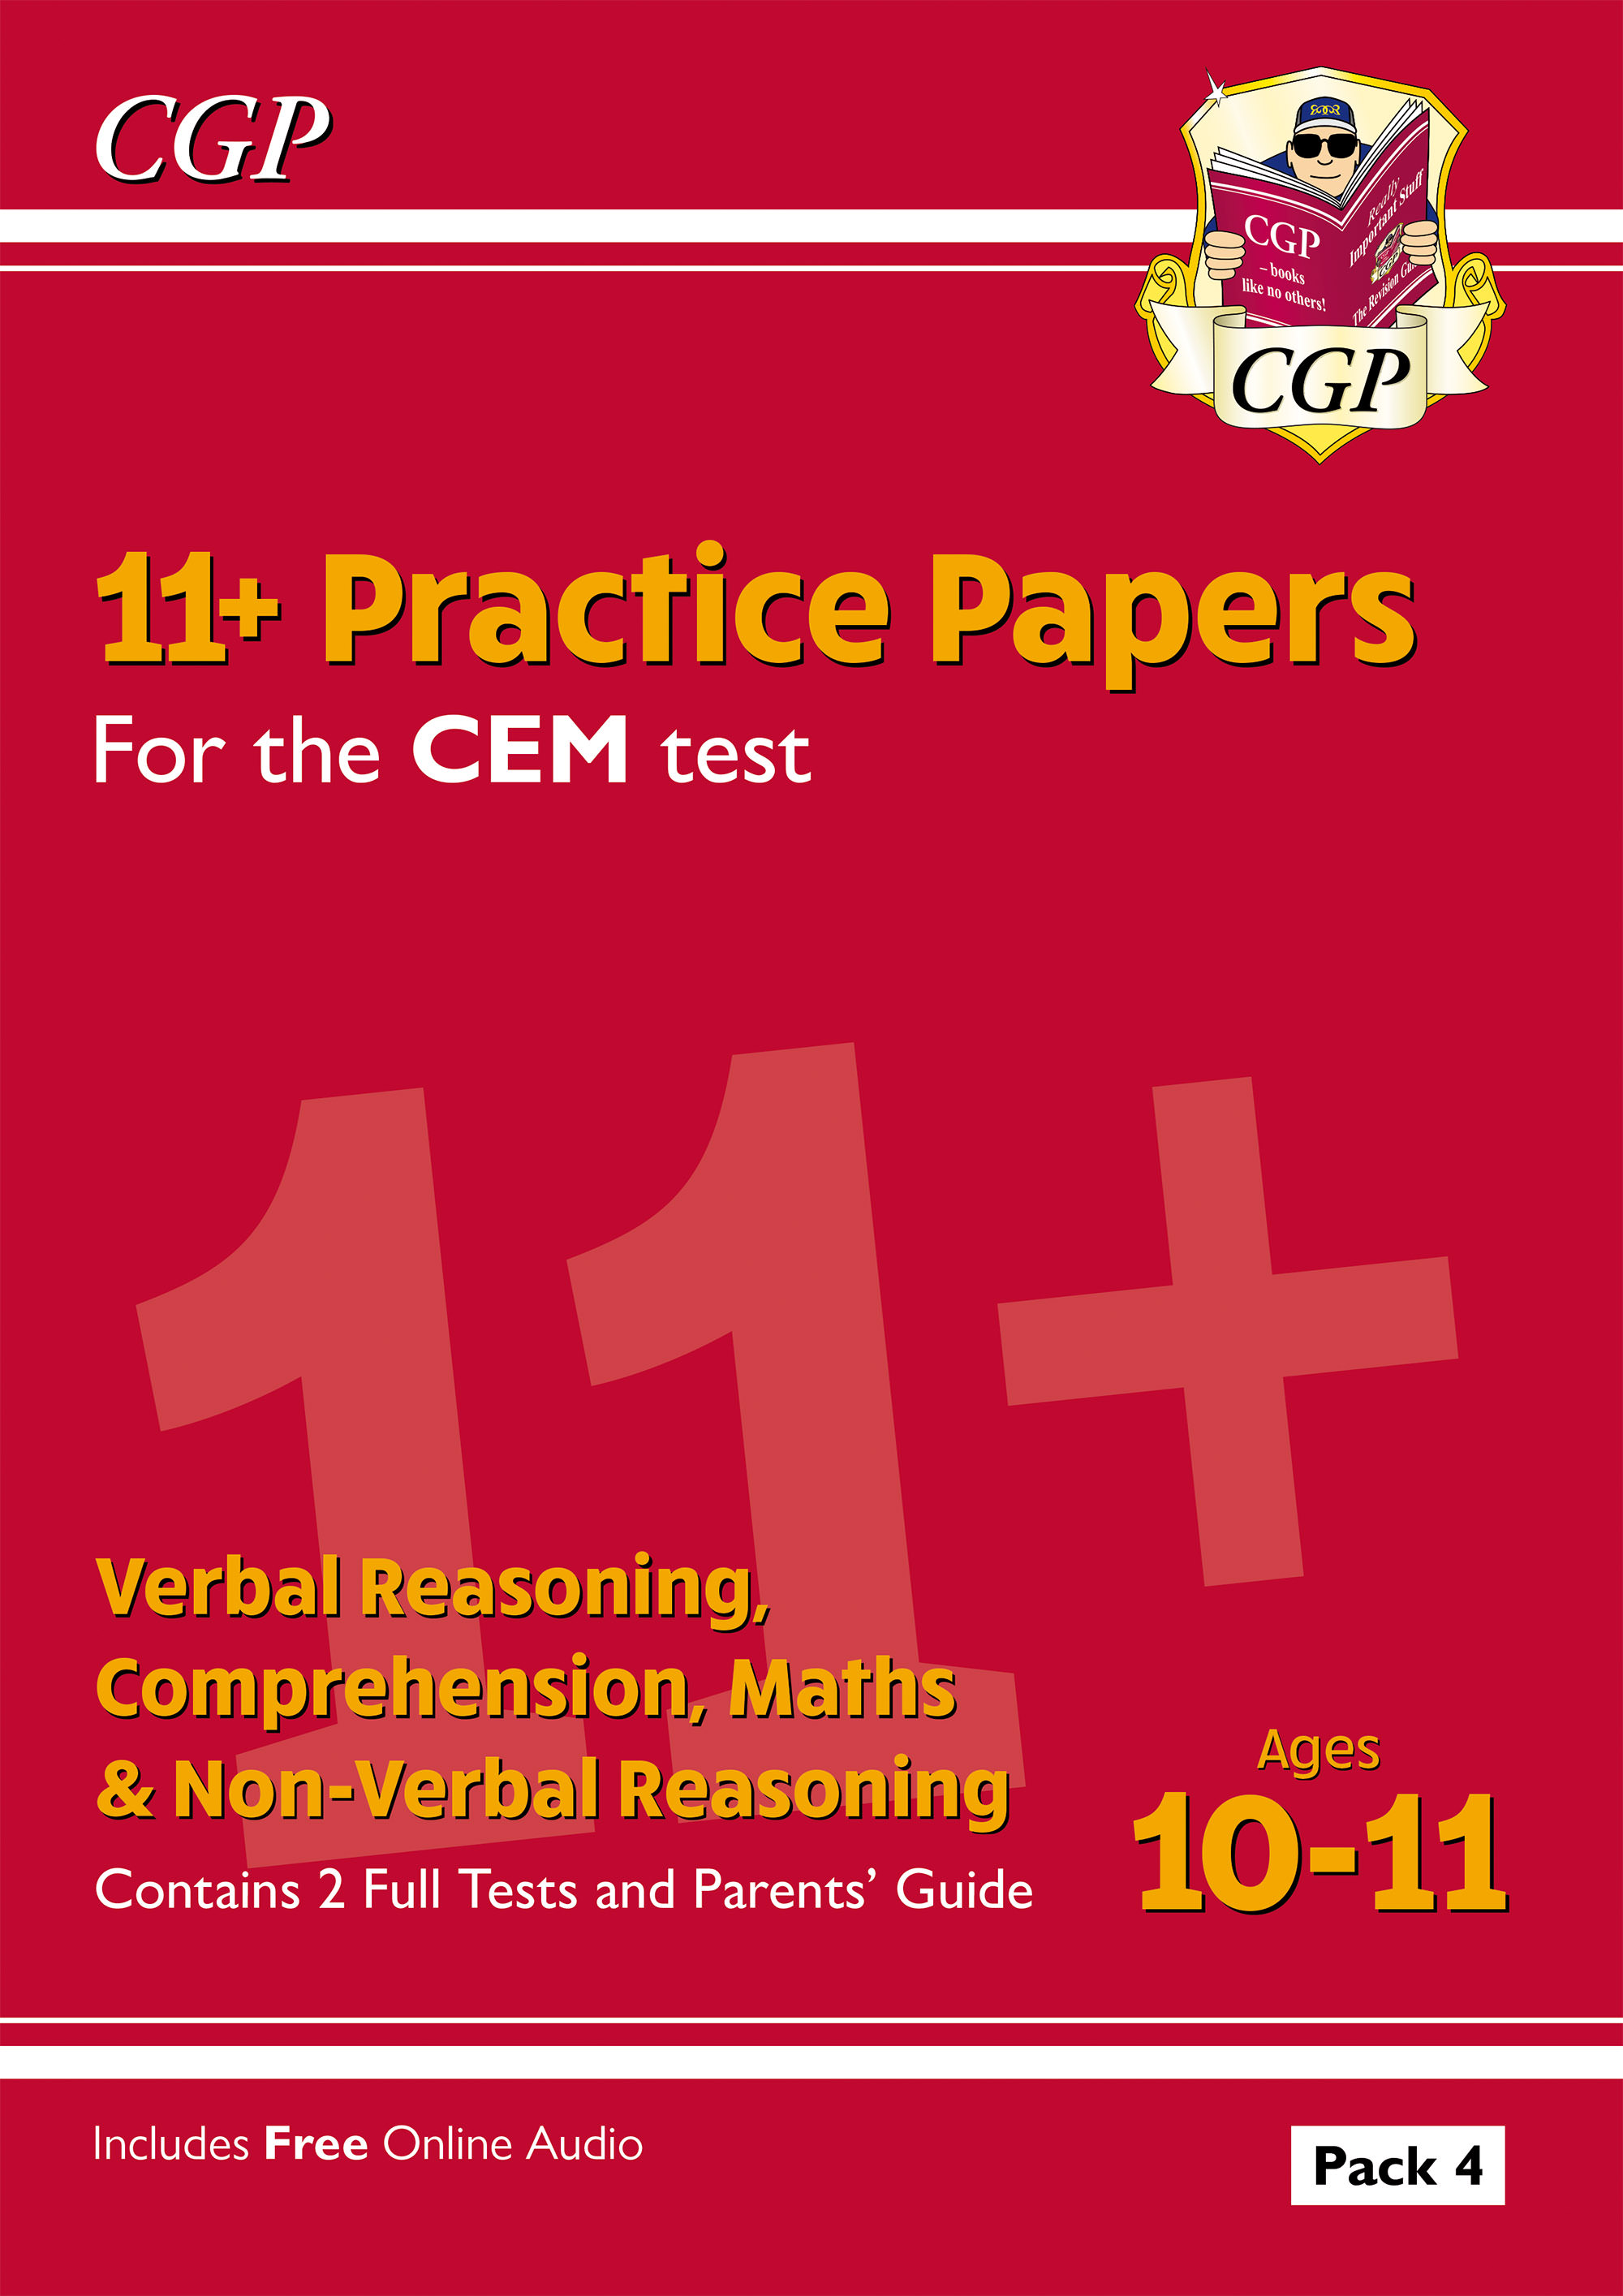 ELP4DE2DK - New 11+ CEM Practice Papers: Ages 10-11 - Pack 4 (with Parents' Guide)